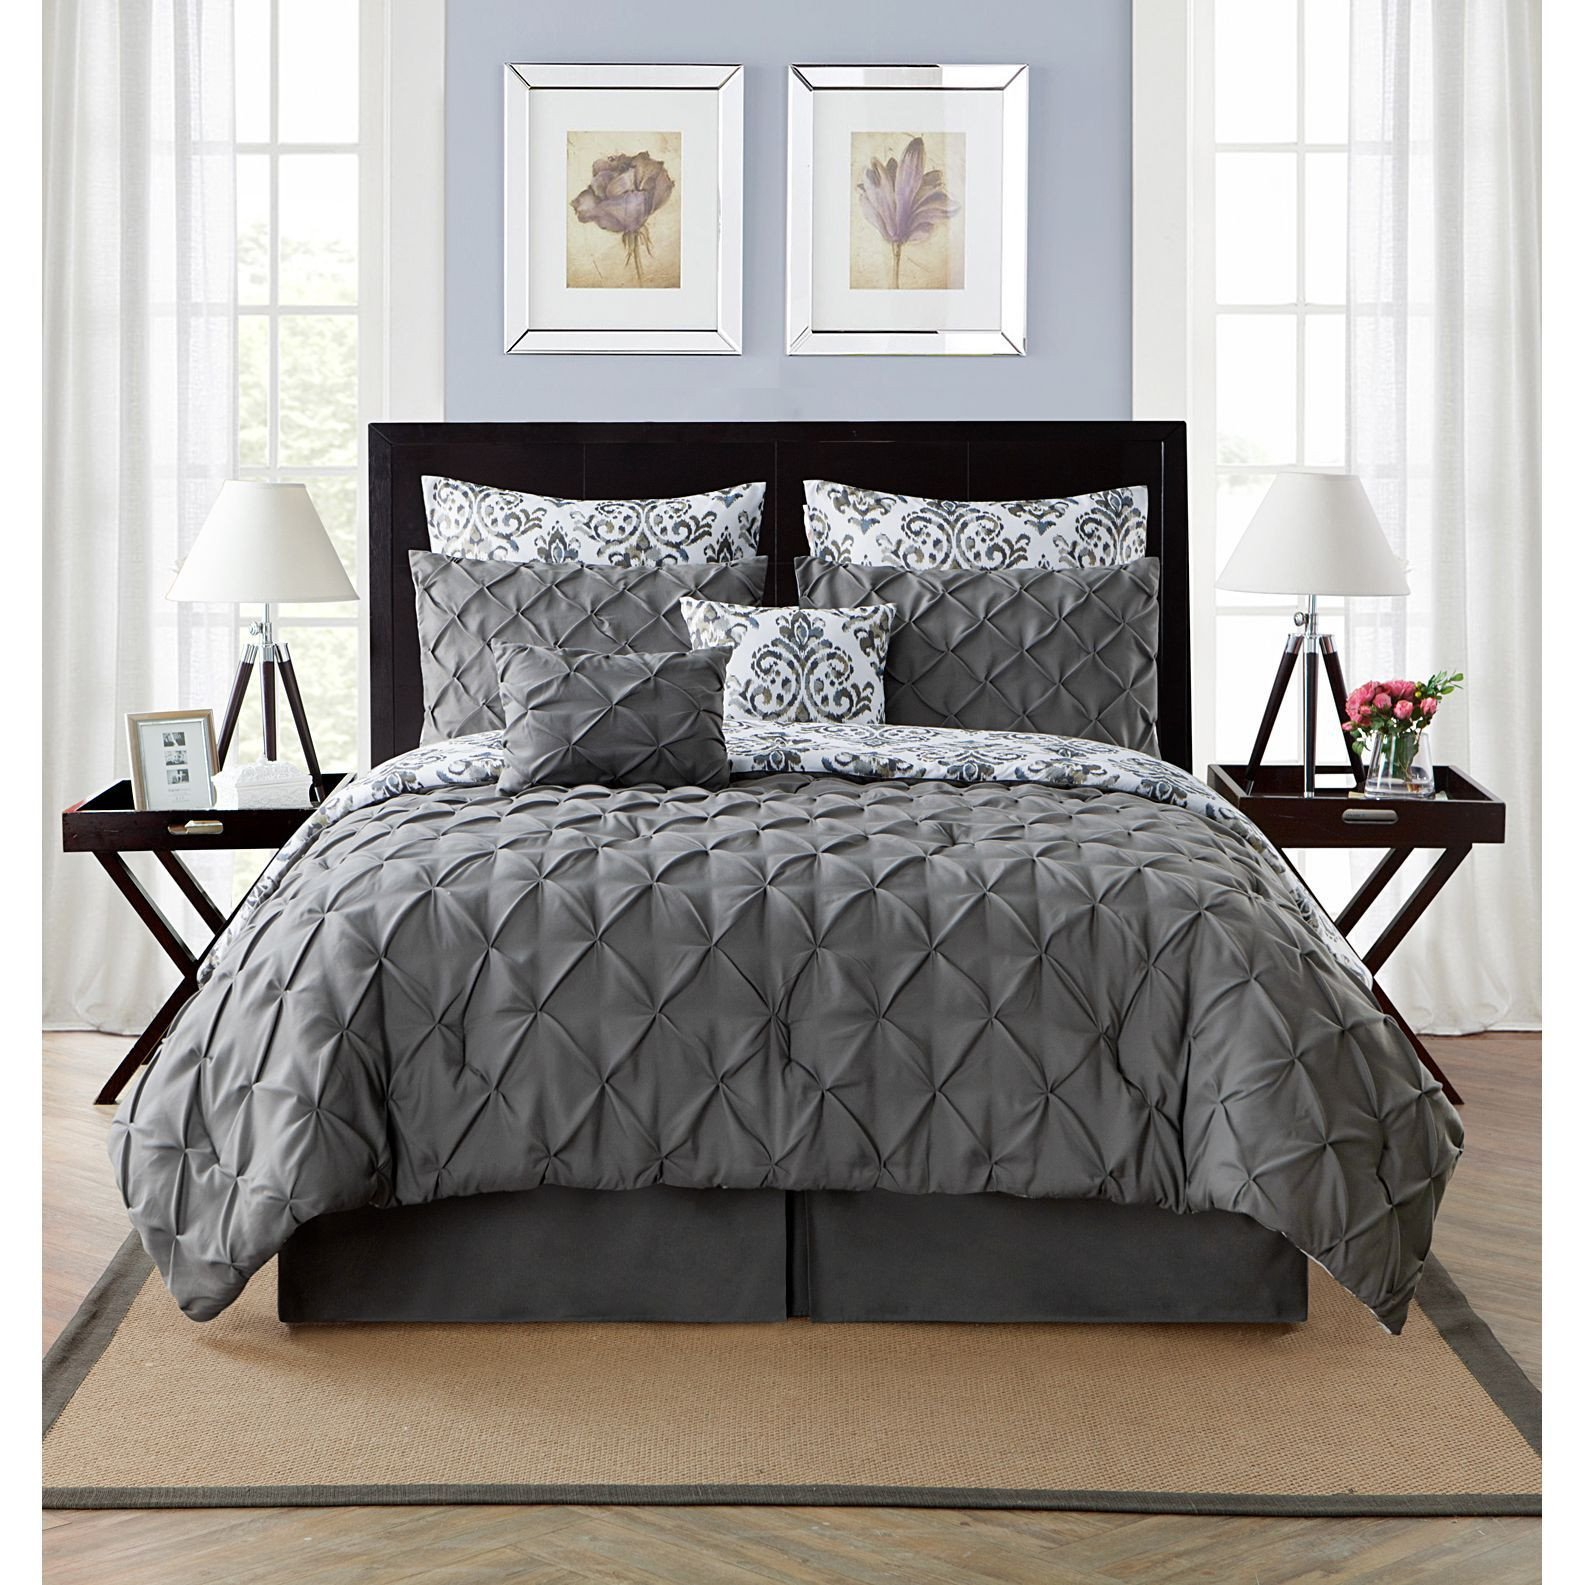 Black and Silver Bedroom Set Luxury Vcny Heather 8 Piece Reversible forter Set Grey King